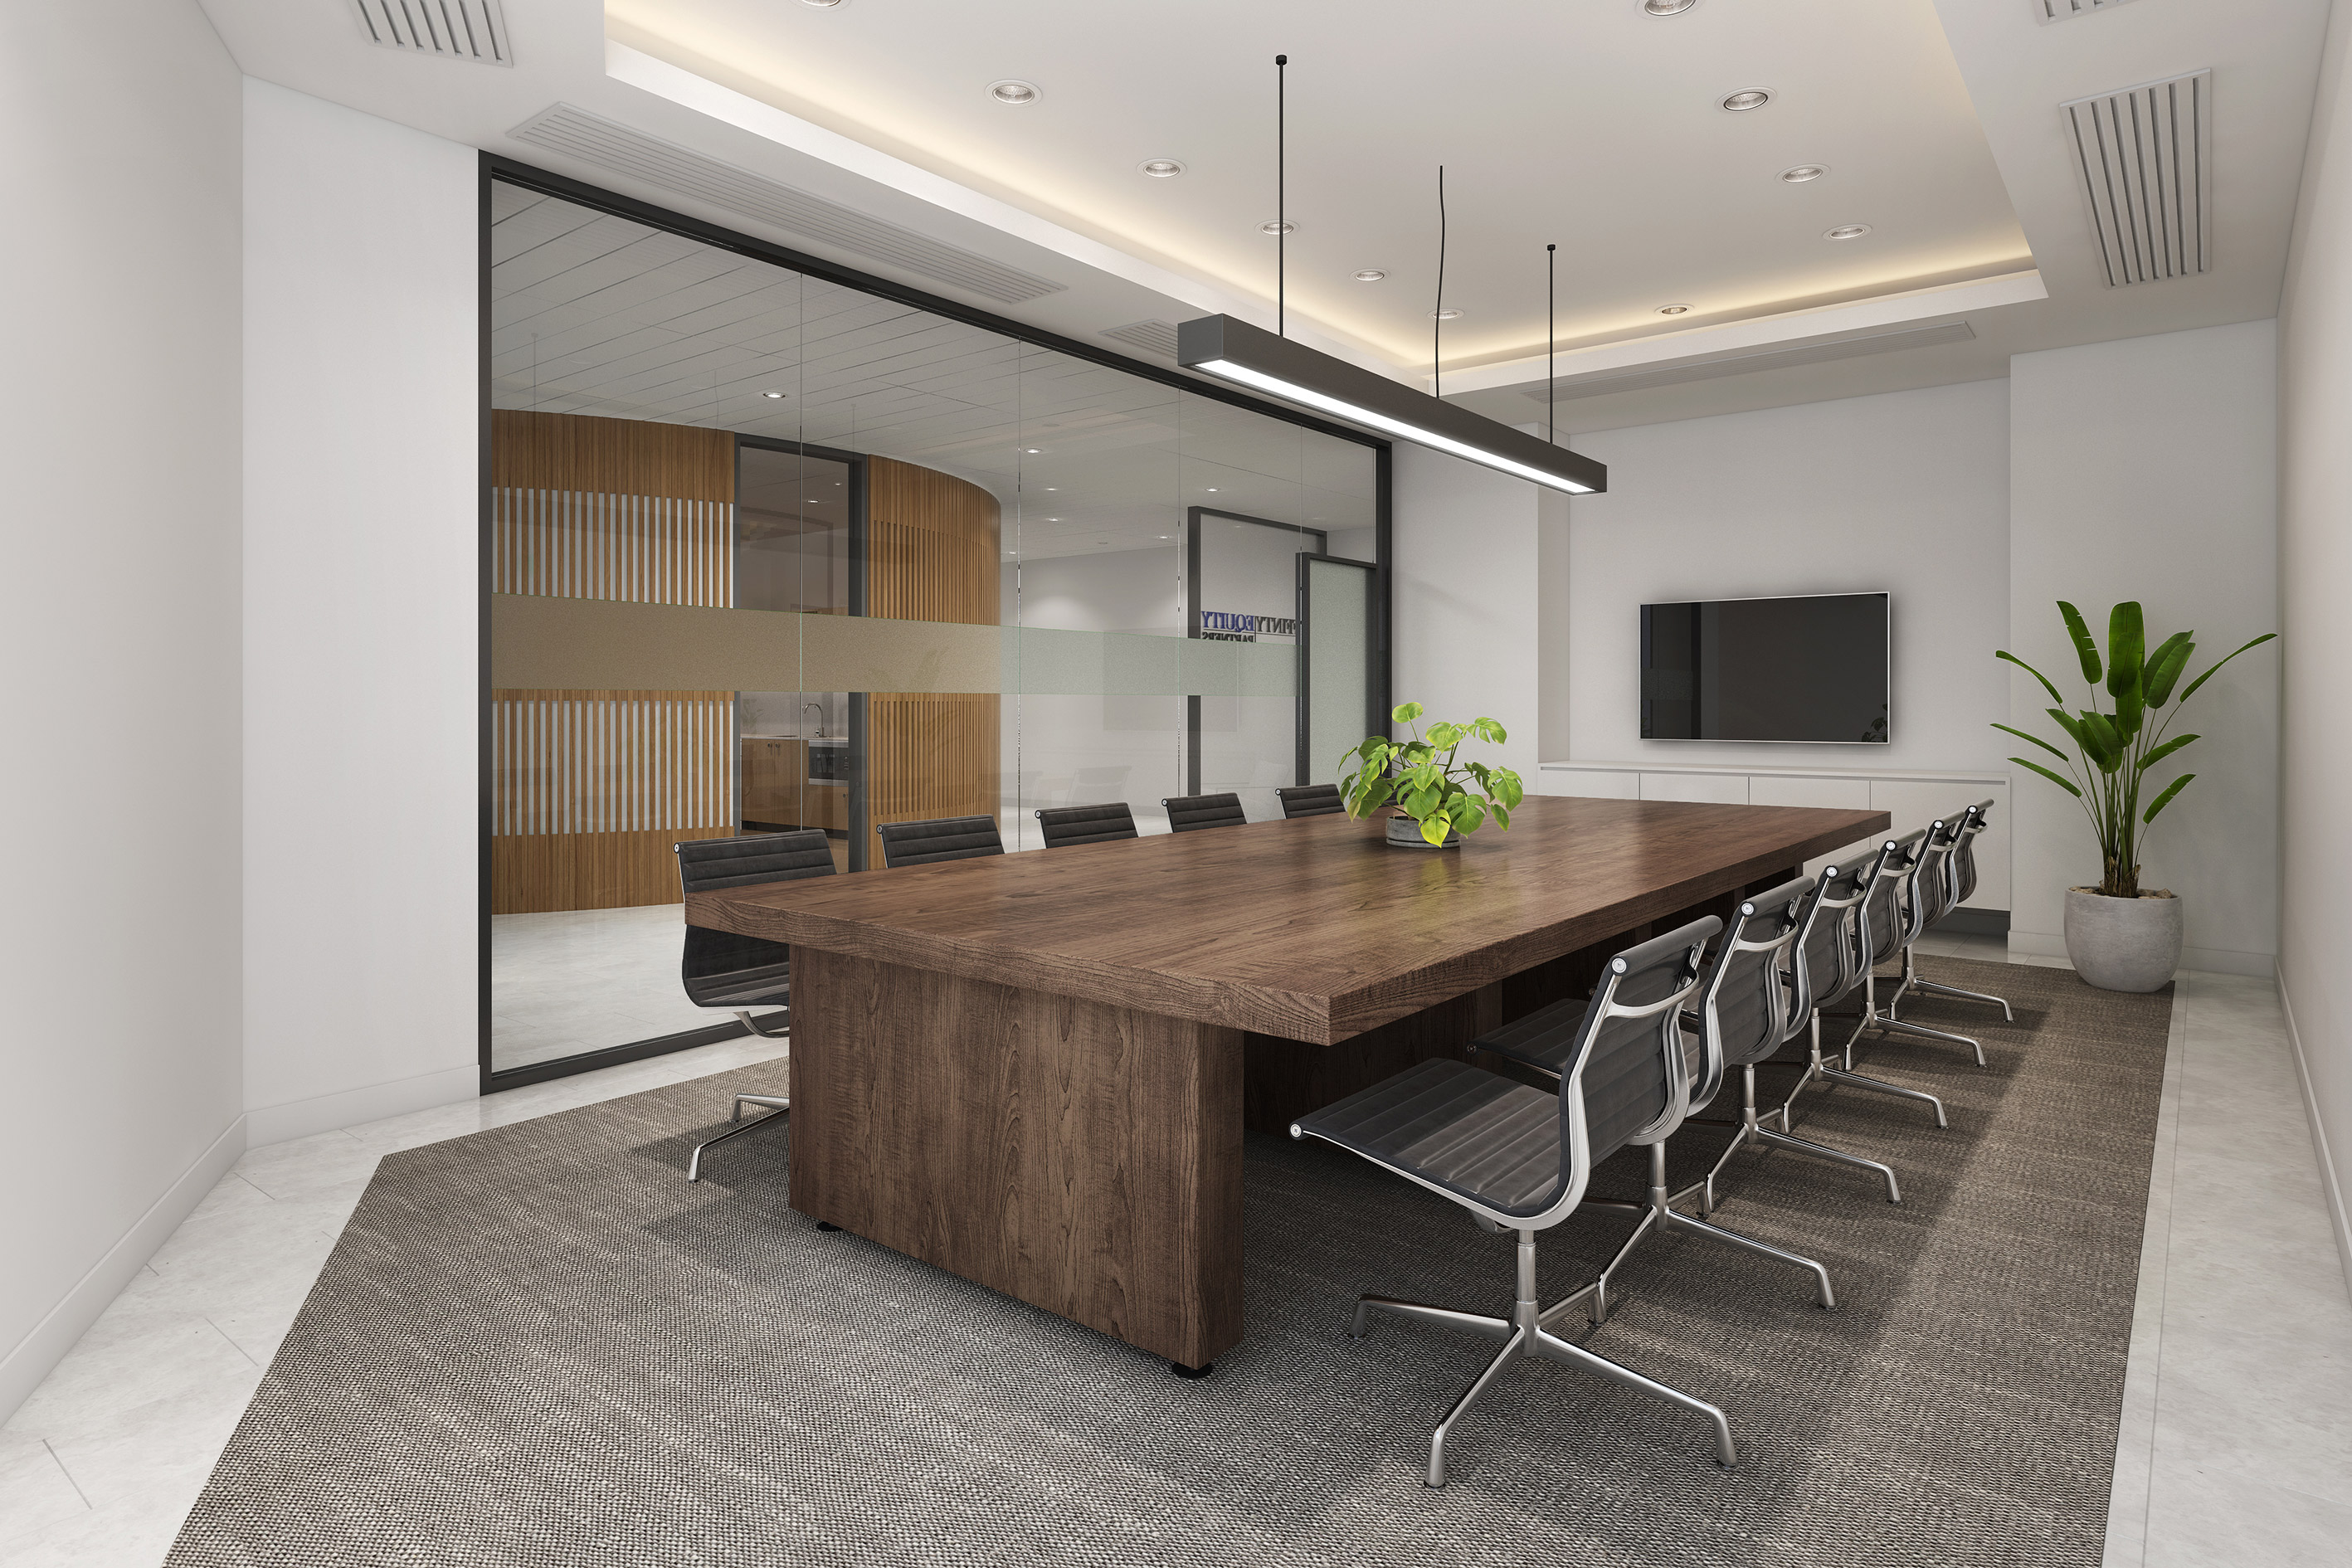 6286 Affinity Equity Commercial Interiors S16194 Boardroom 1 Final